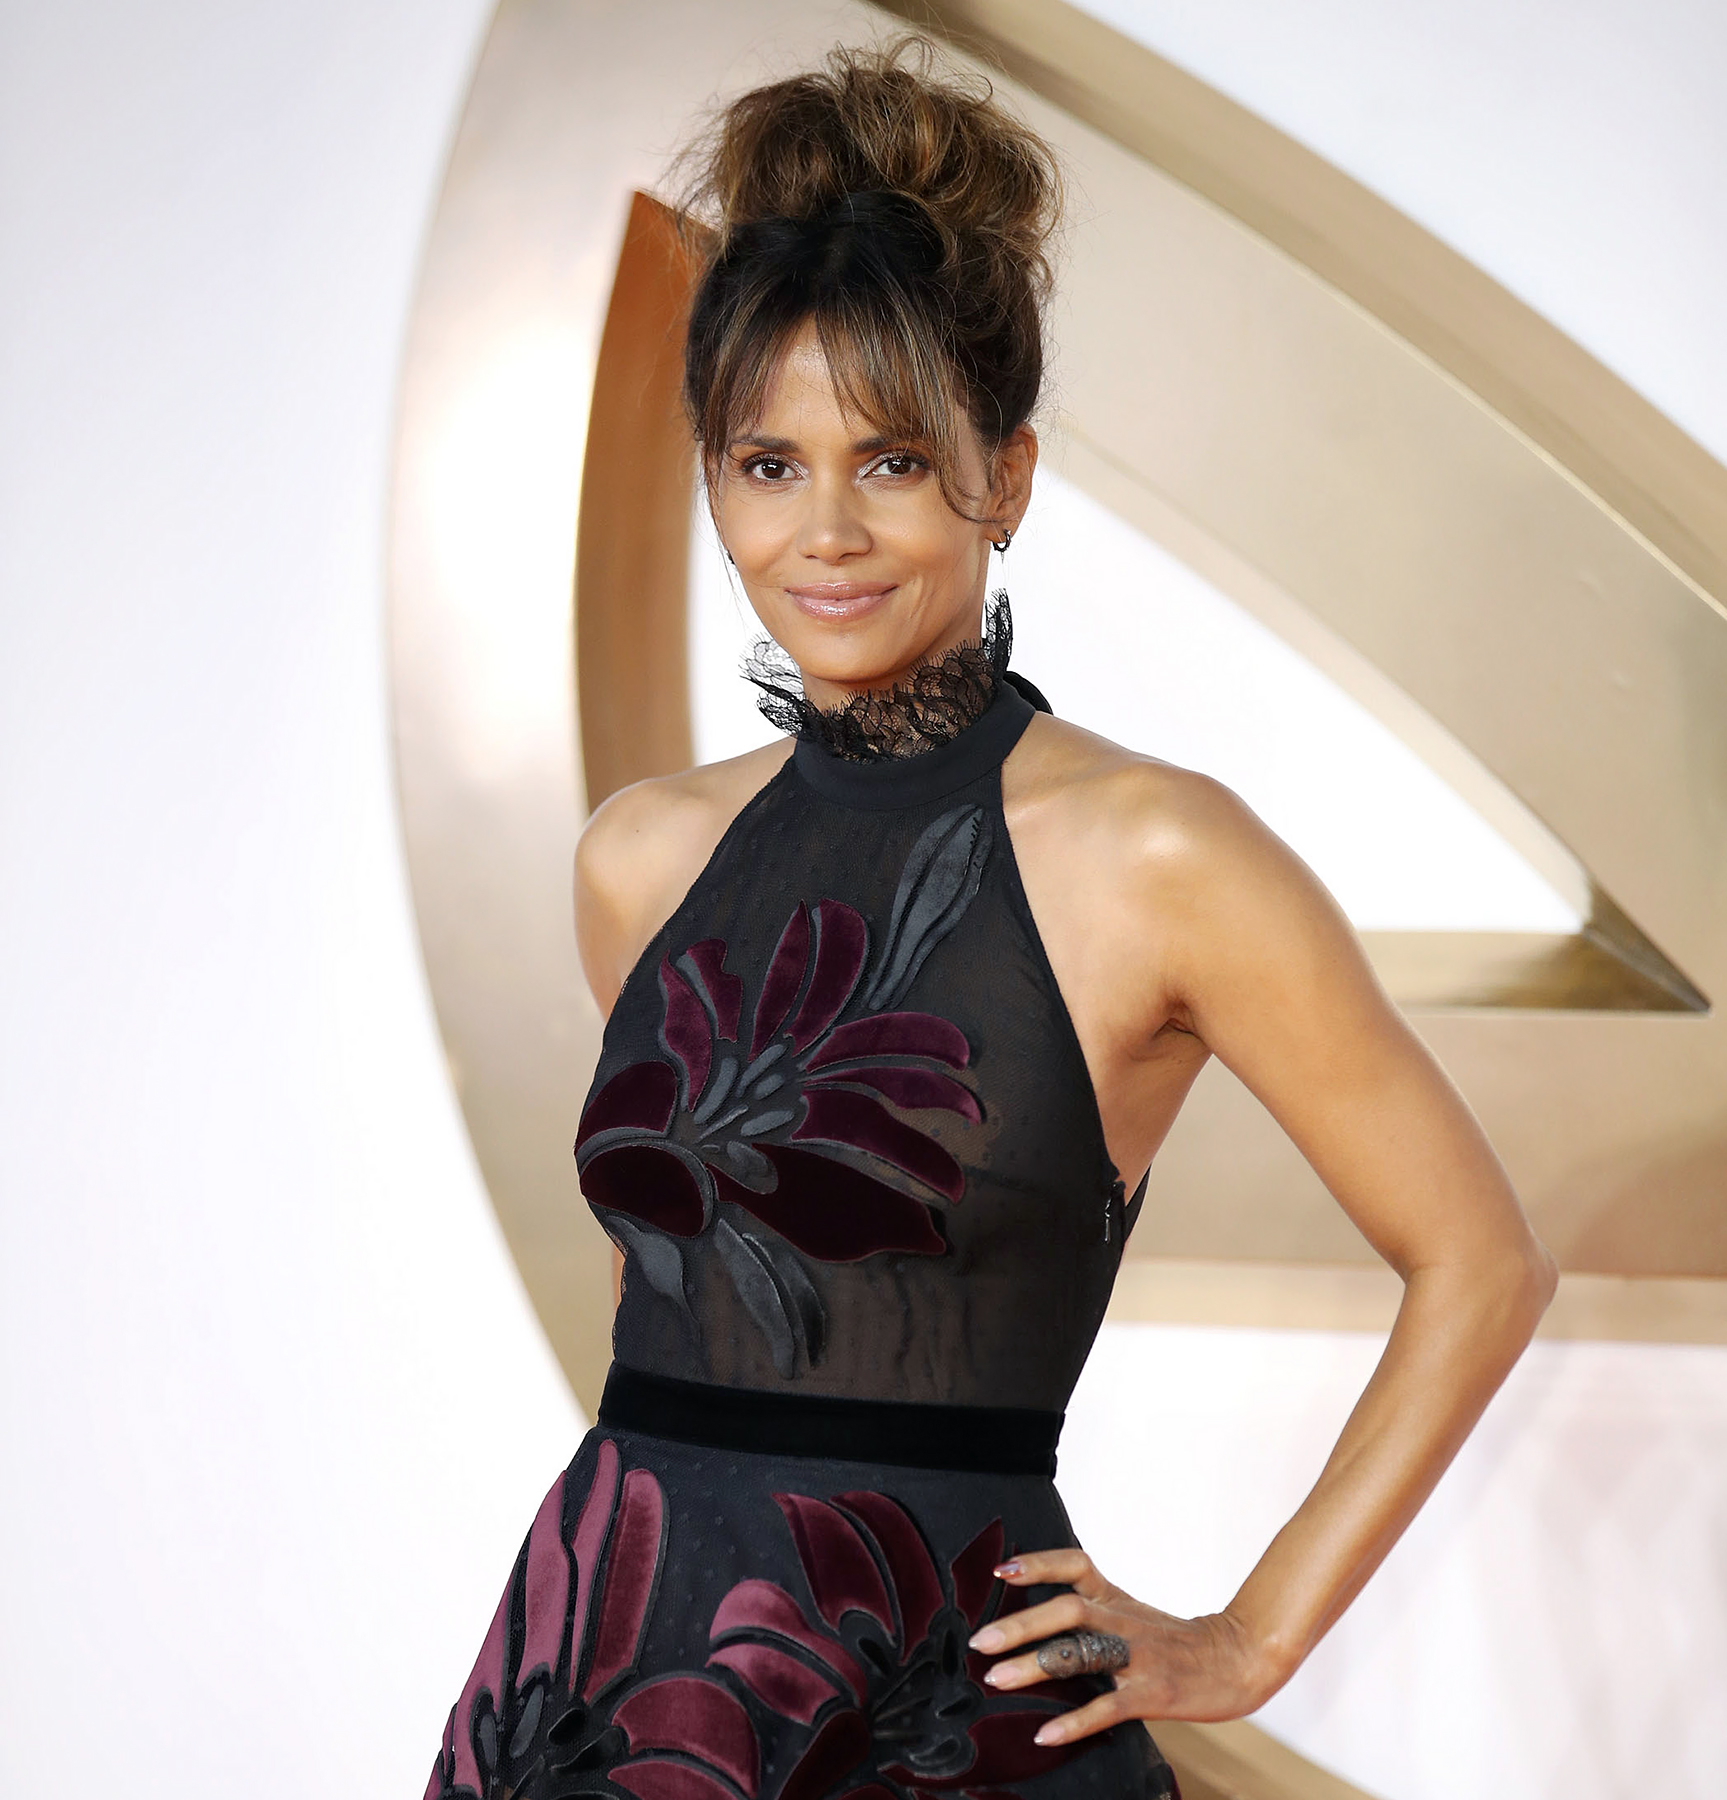 Halle Berry Bids 2017 Farewell With Her Middle Finger